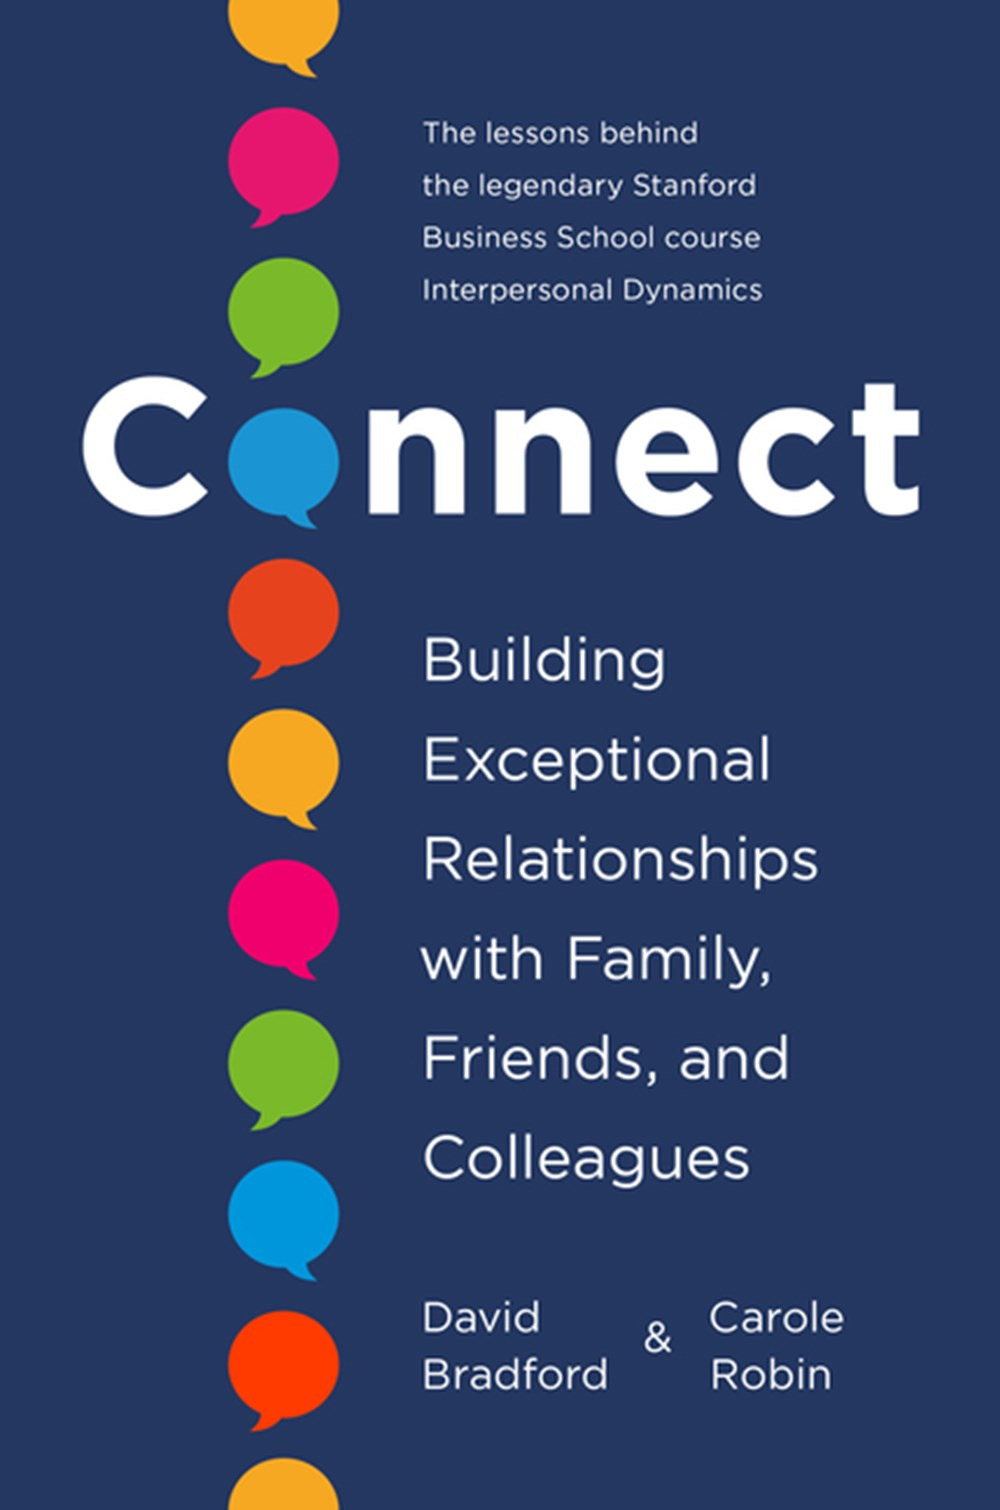 Connect Building Exceptional Relationships with Family, Friends, and Colleagues